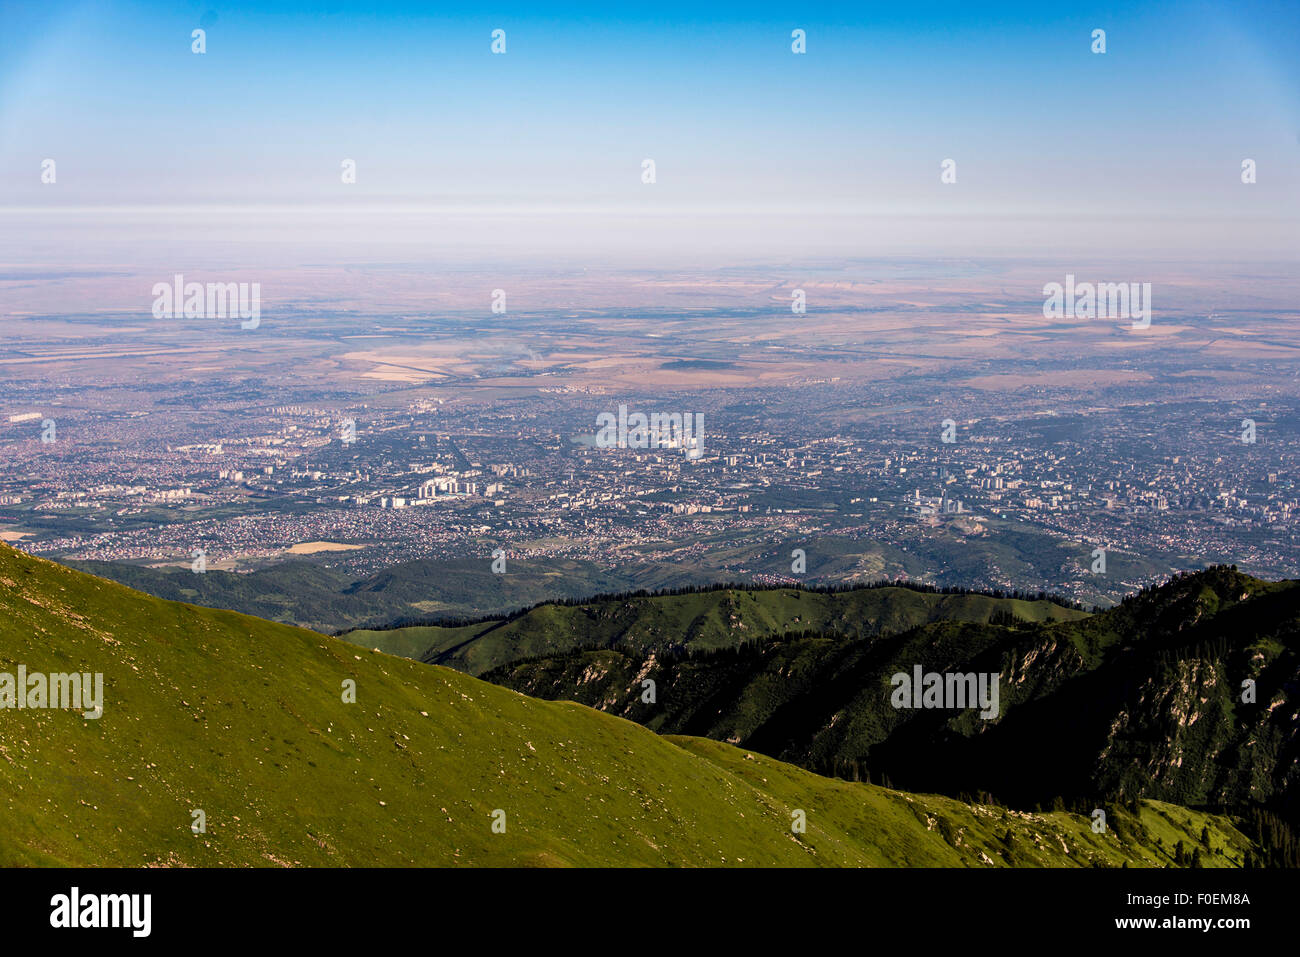 Summer mountain landscape in Almaty, Kazakhstan - Stock Image